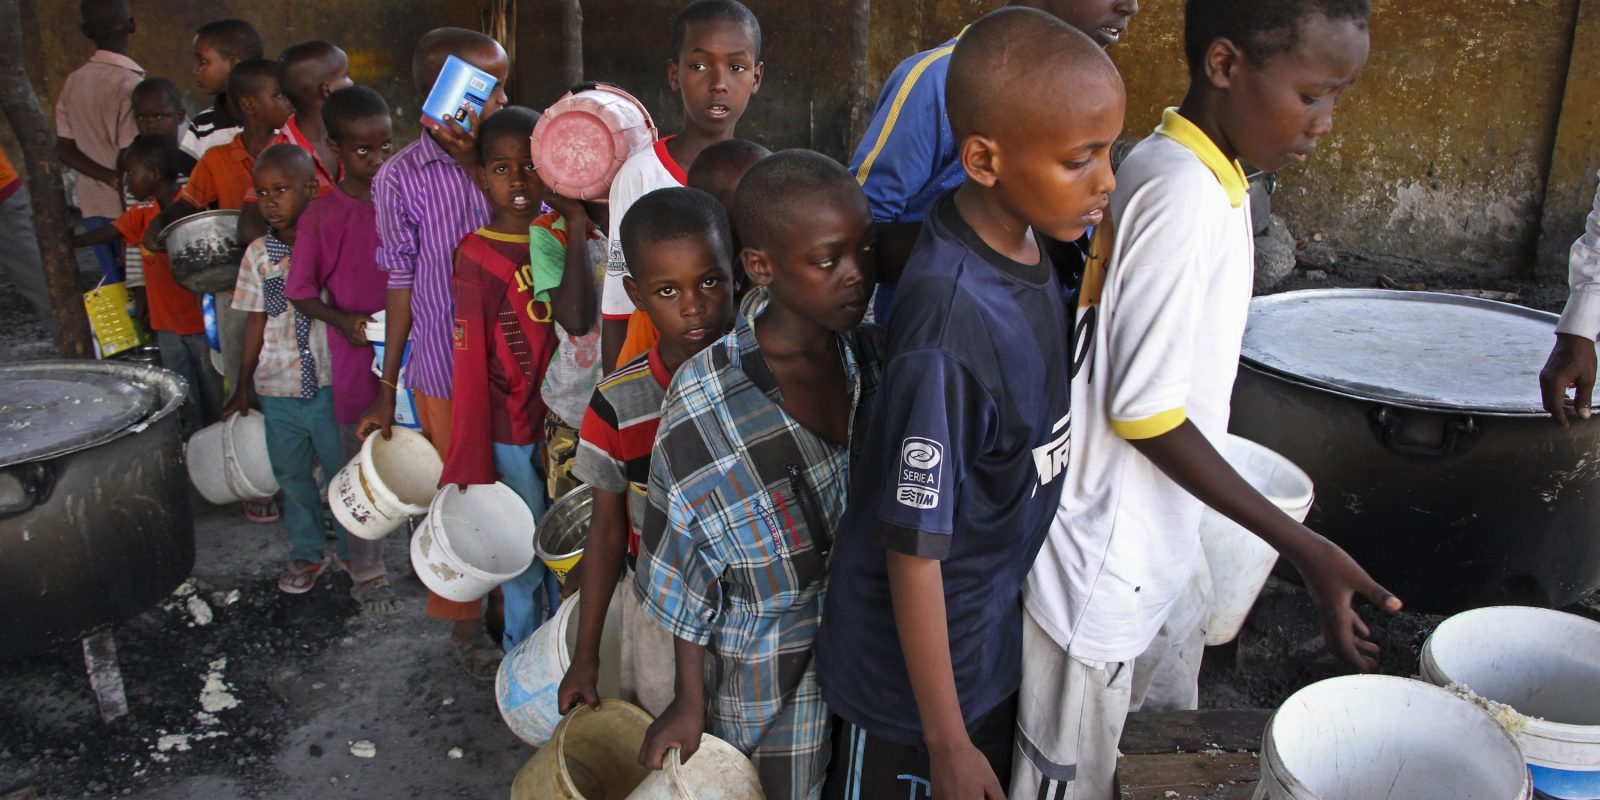 © Copyright 2017 The Associated Press. All rights reserved.. Imagen Por: Niños somalíes que huyeron de la sequía en el sur de Somalia, se colocan en una cola para recibir alimentos en un centro de alimentación en un campamento en Mogadiscio, Somalia. / AP